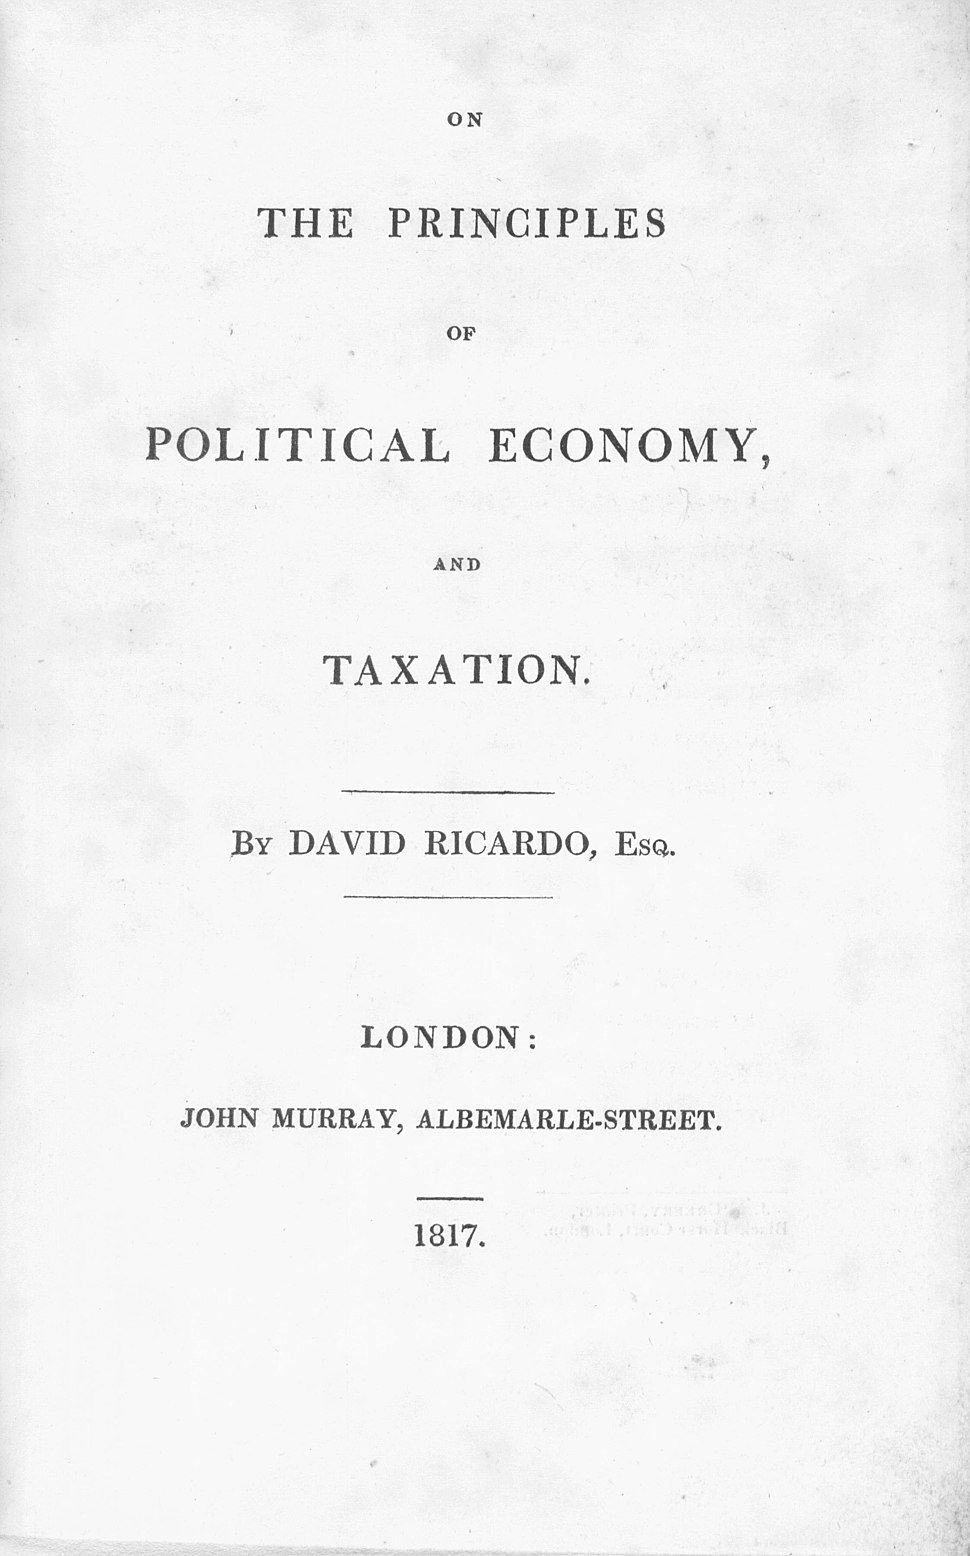 David Ricardo - On the principles of political economy and taxation (1817, title)